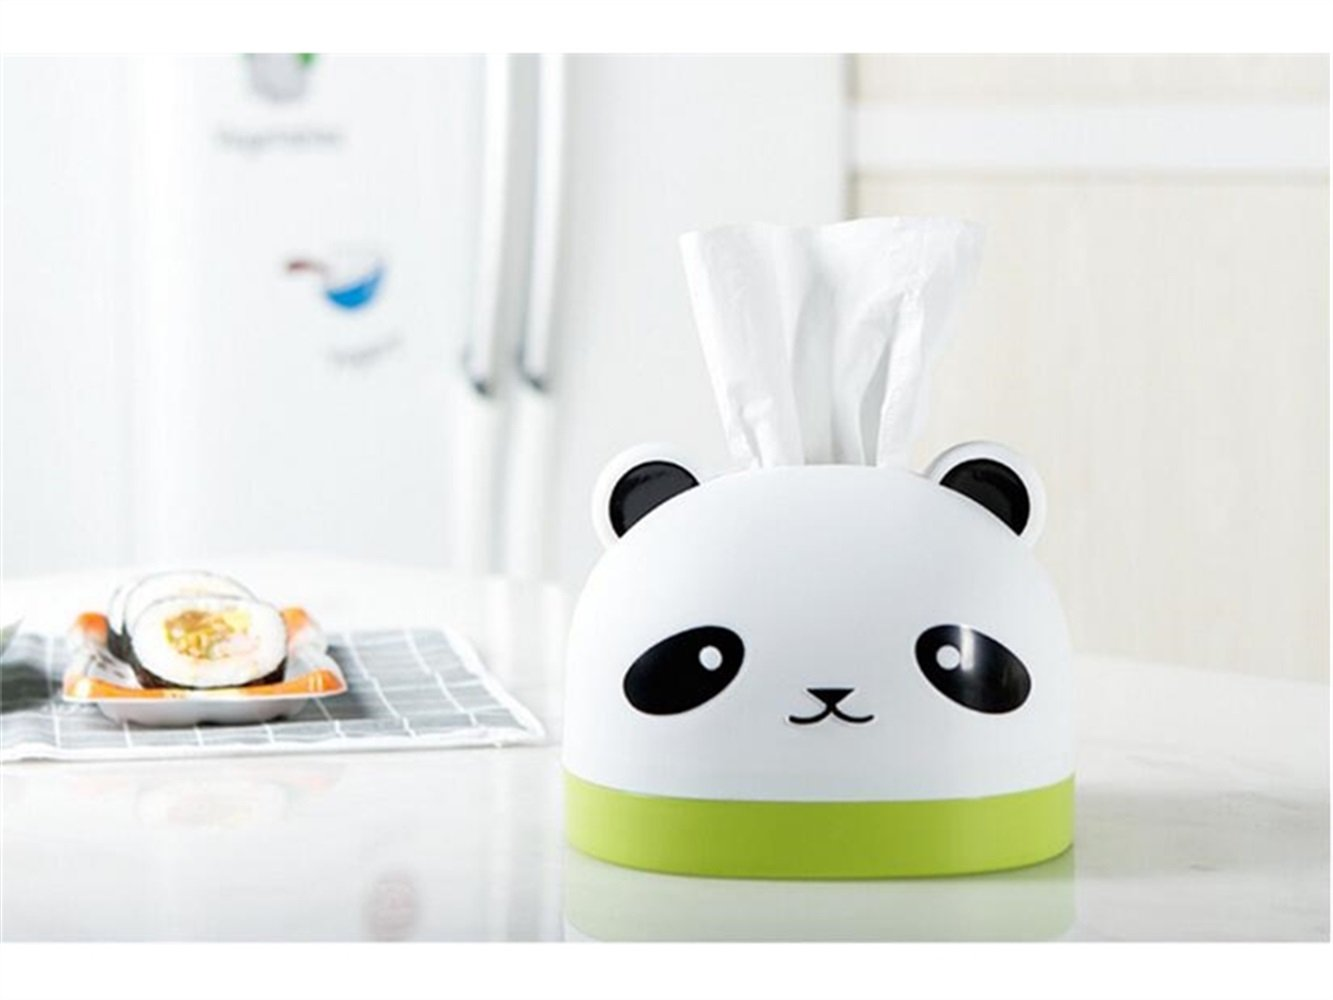 Yuchoi Perfectly Shaped Cute Panda Tissue Box Animal Paper Box Restaurant and Living Room Plastic Paper Towel Box